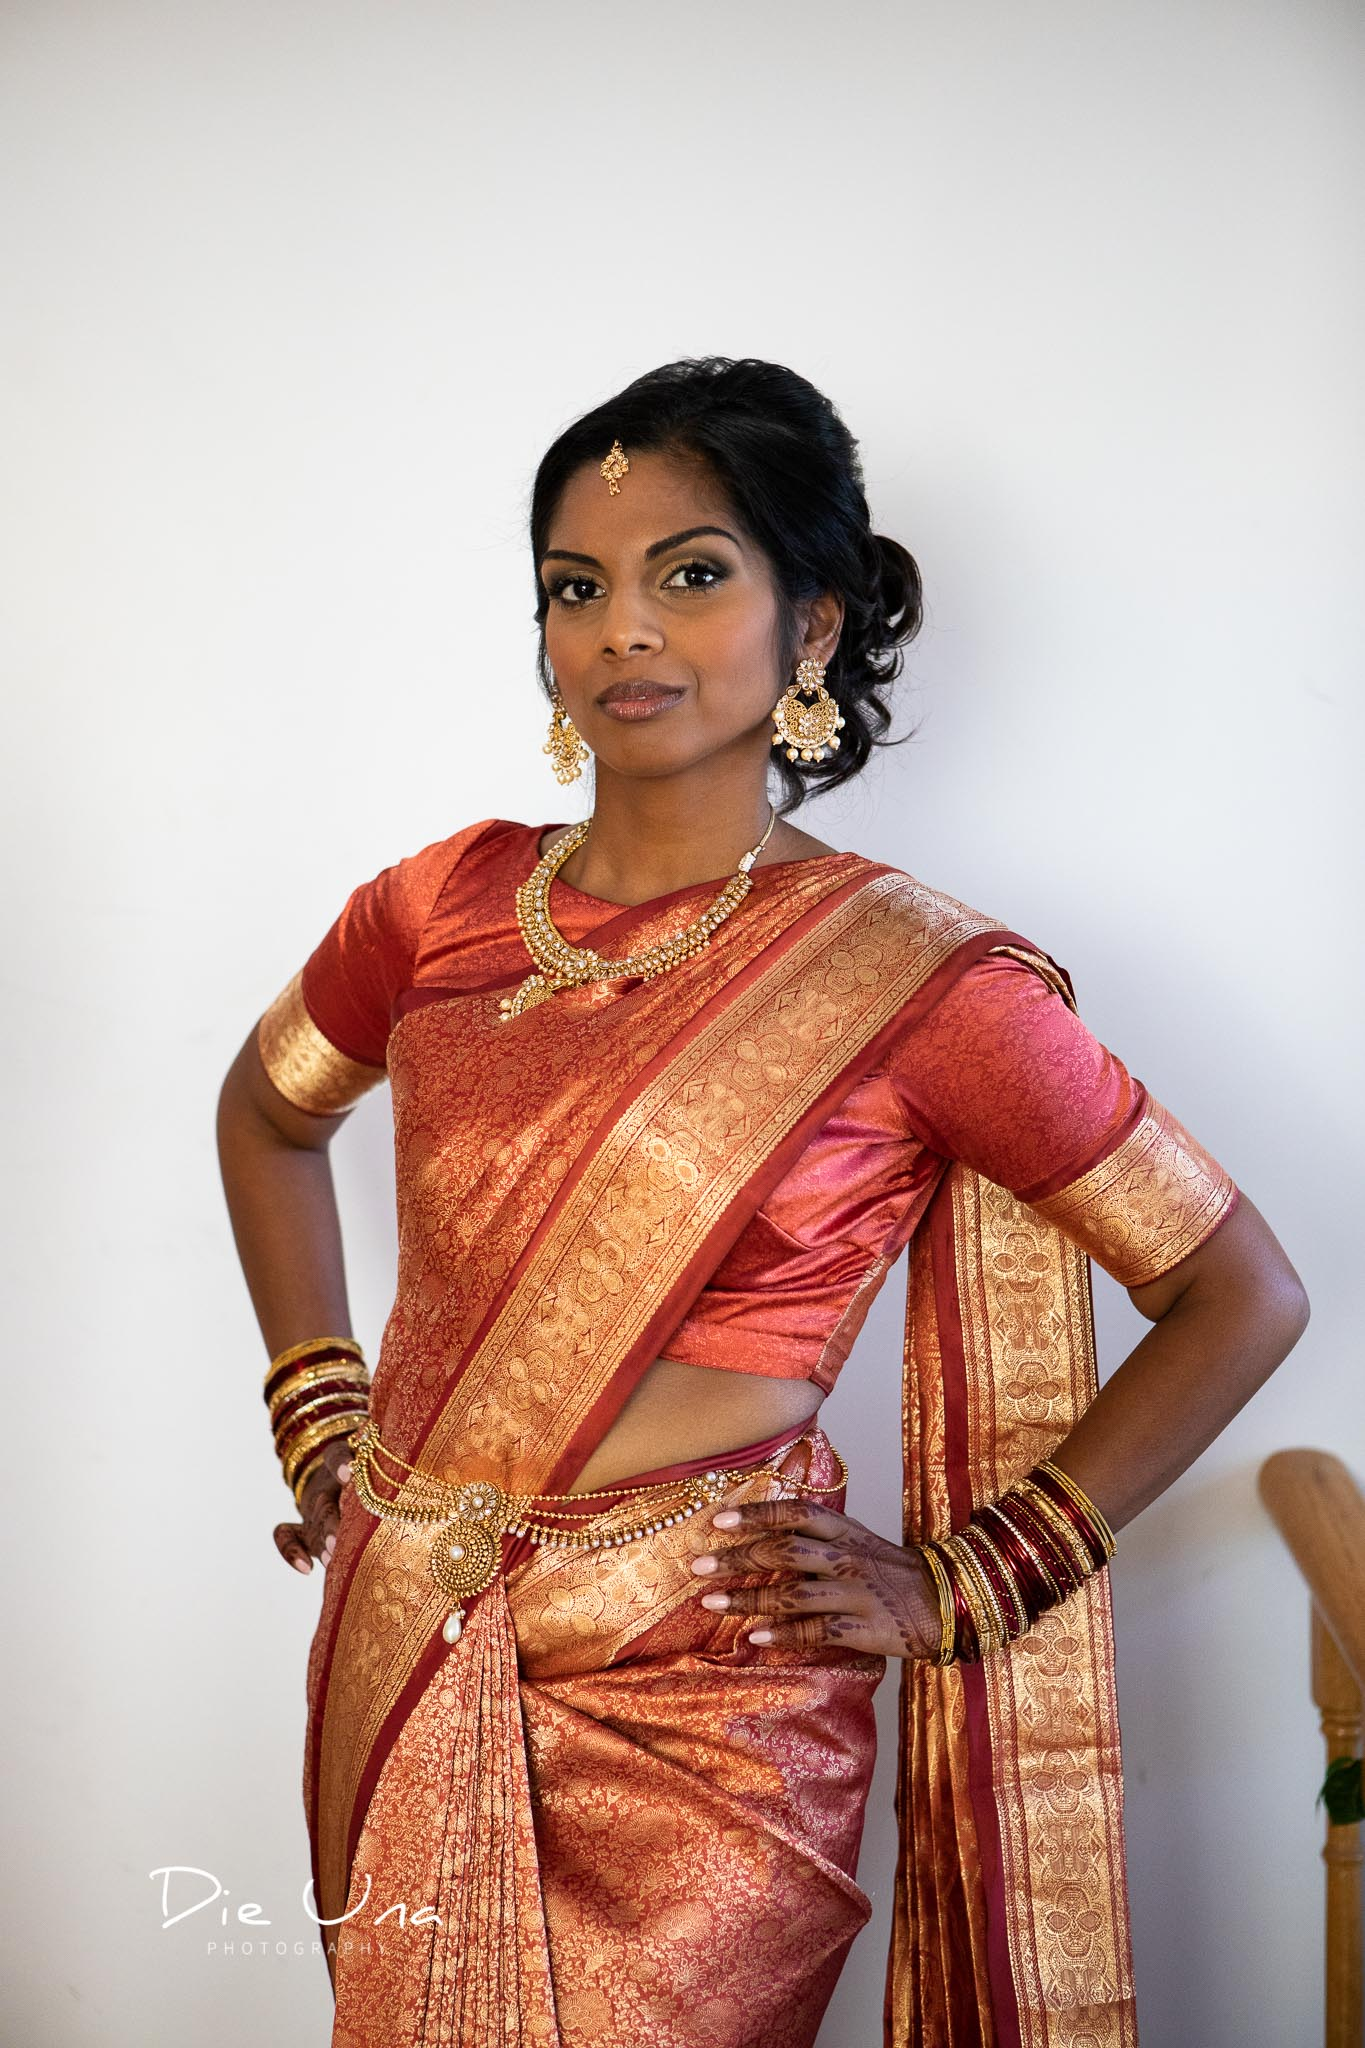 bride wearing red and gold saree.jpg